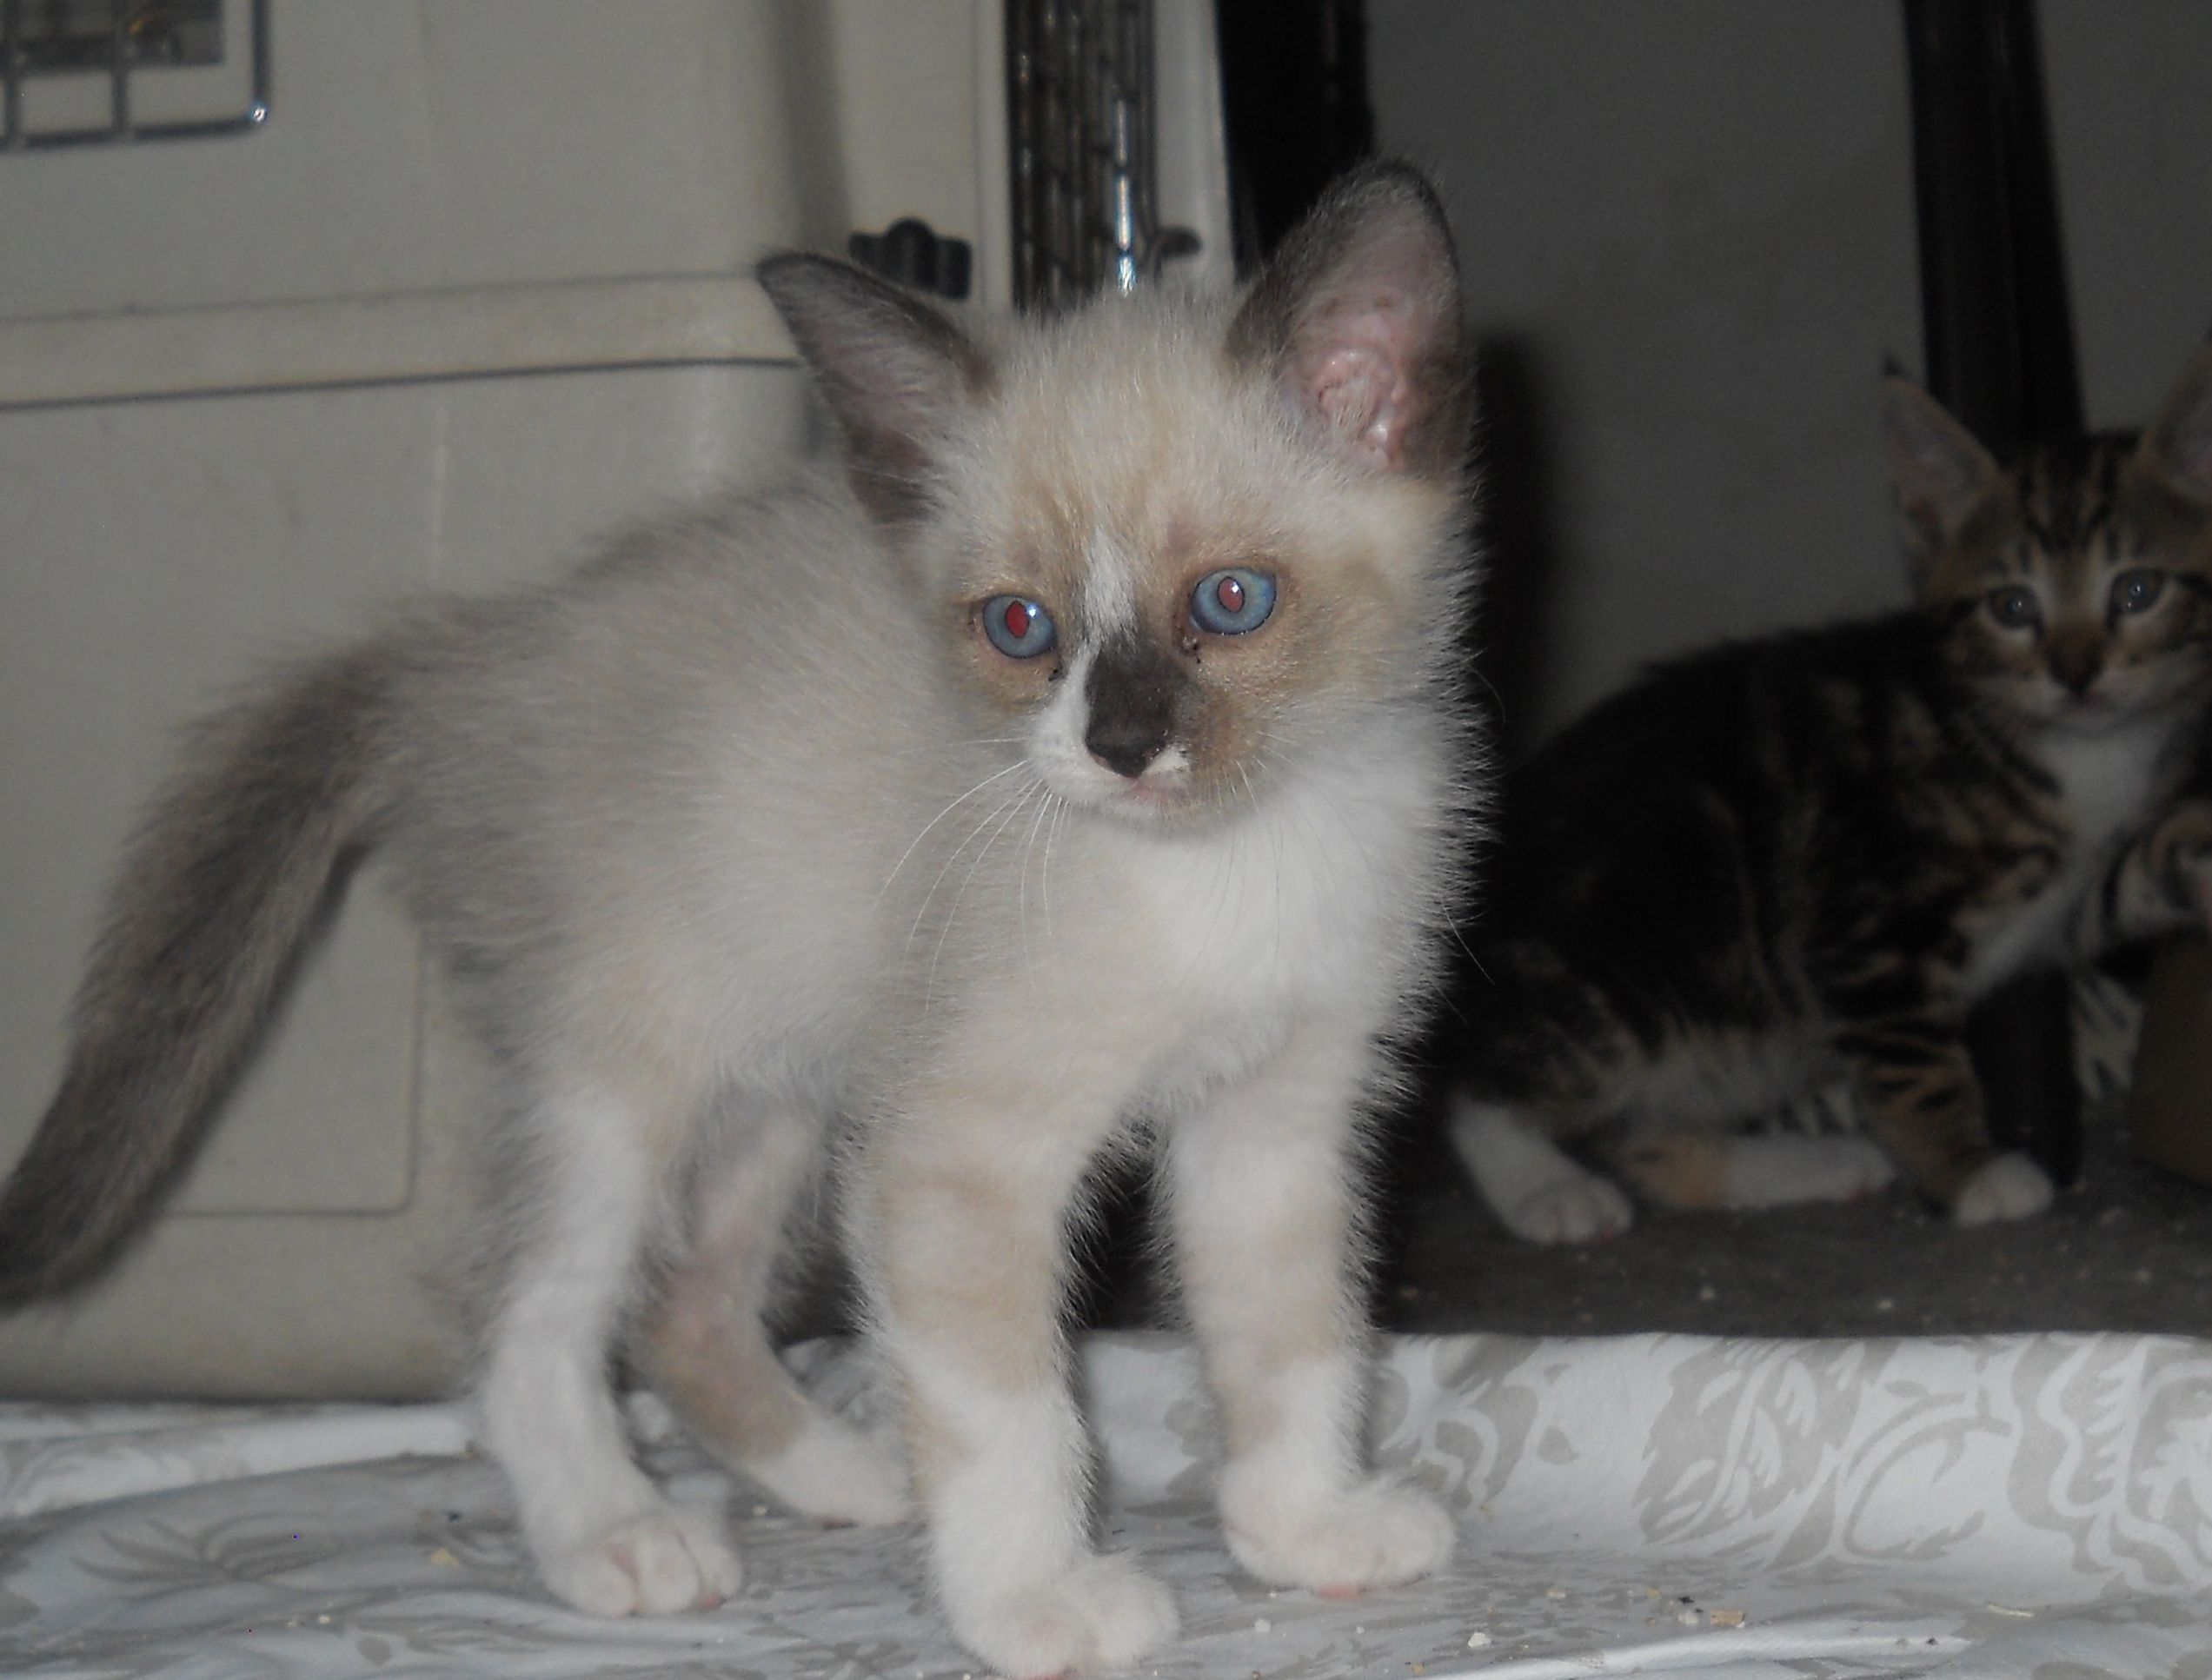 Frita Is A 6 Week Old Siamese Blend Kitten Who Is Playful And Sweet Adoption Fee Is 60 Apply With Another Chance Ani Animal Welfare League Pets Cute Animals